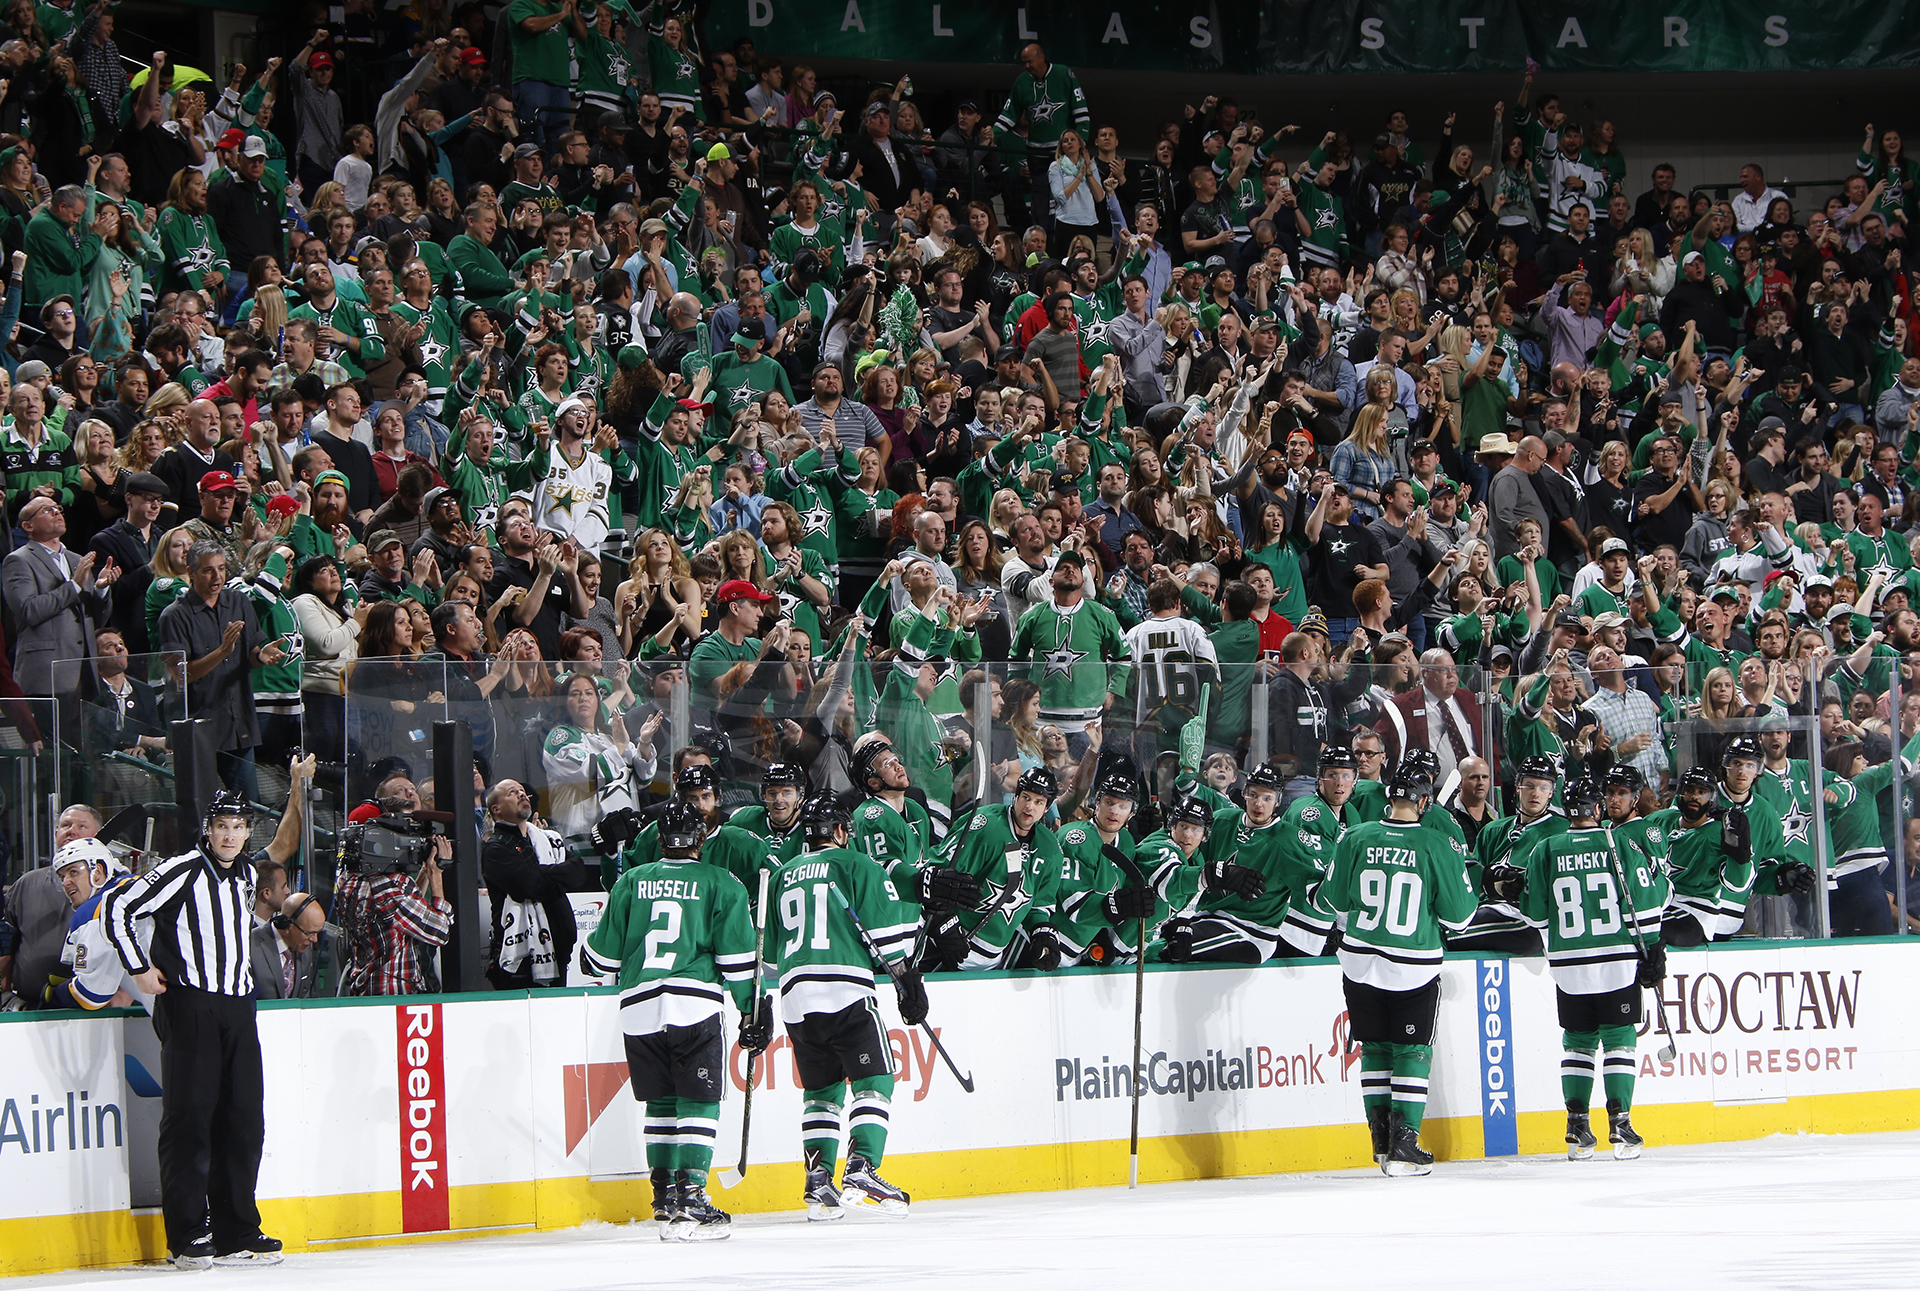 DALLAS, TX - MARCH 12: Kris Russell #2, Tyler Seguin #91, Jason Spezza #90, Ales Hemsky #83 and the Dallas Stars celebrate a goal against the St. Louis Blues at the American Airlines Center on March 12, 2016 in Dallas, Texas. (Photo by Glenn James/NHLI via Getty Images)